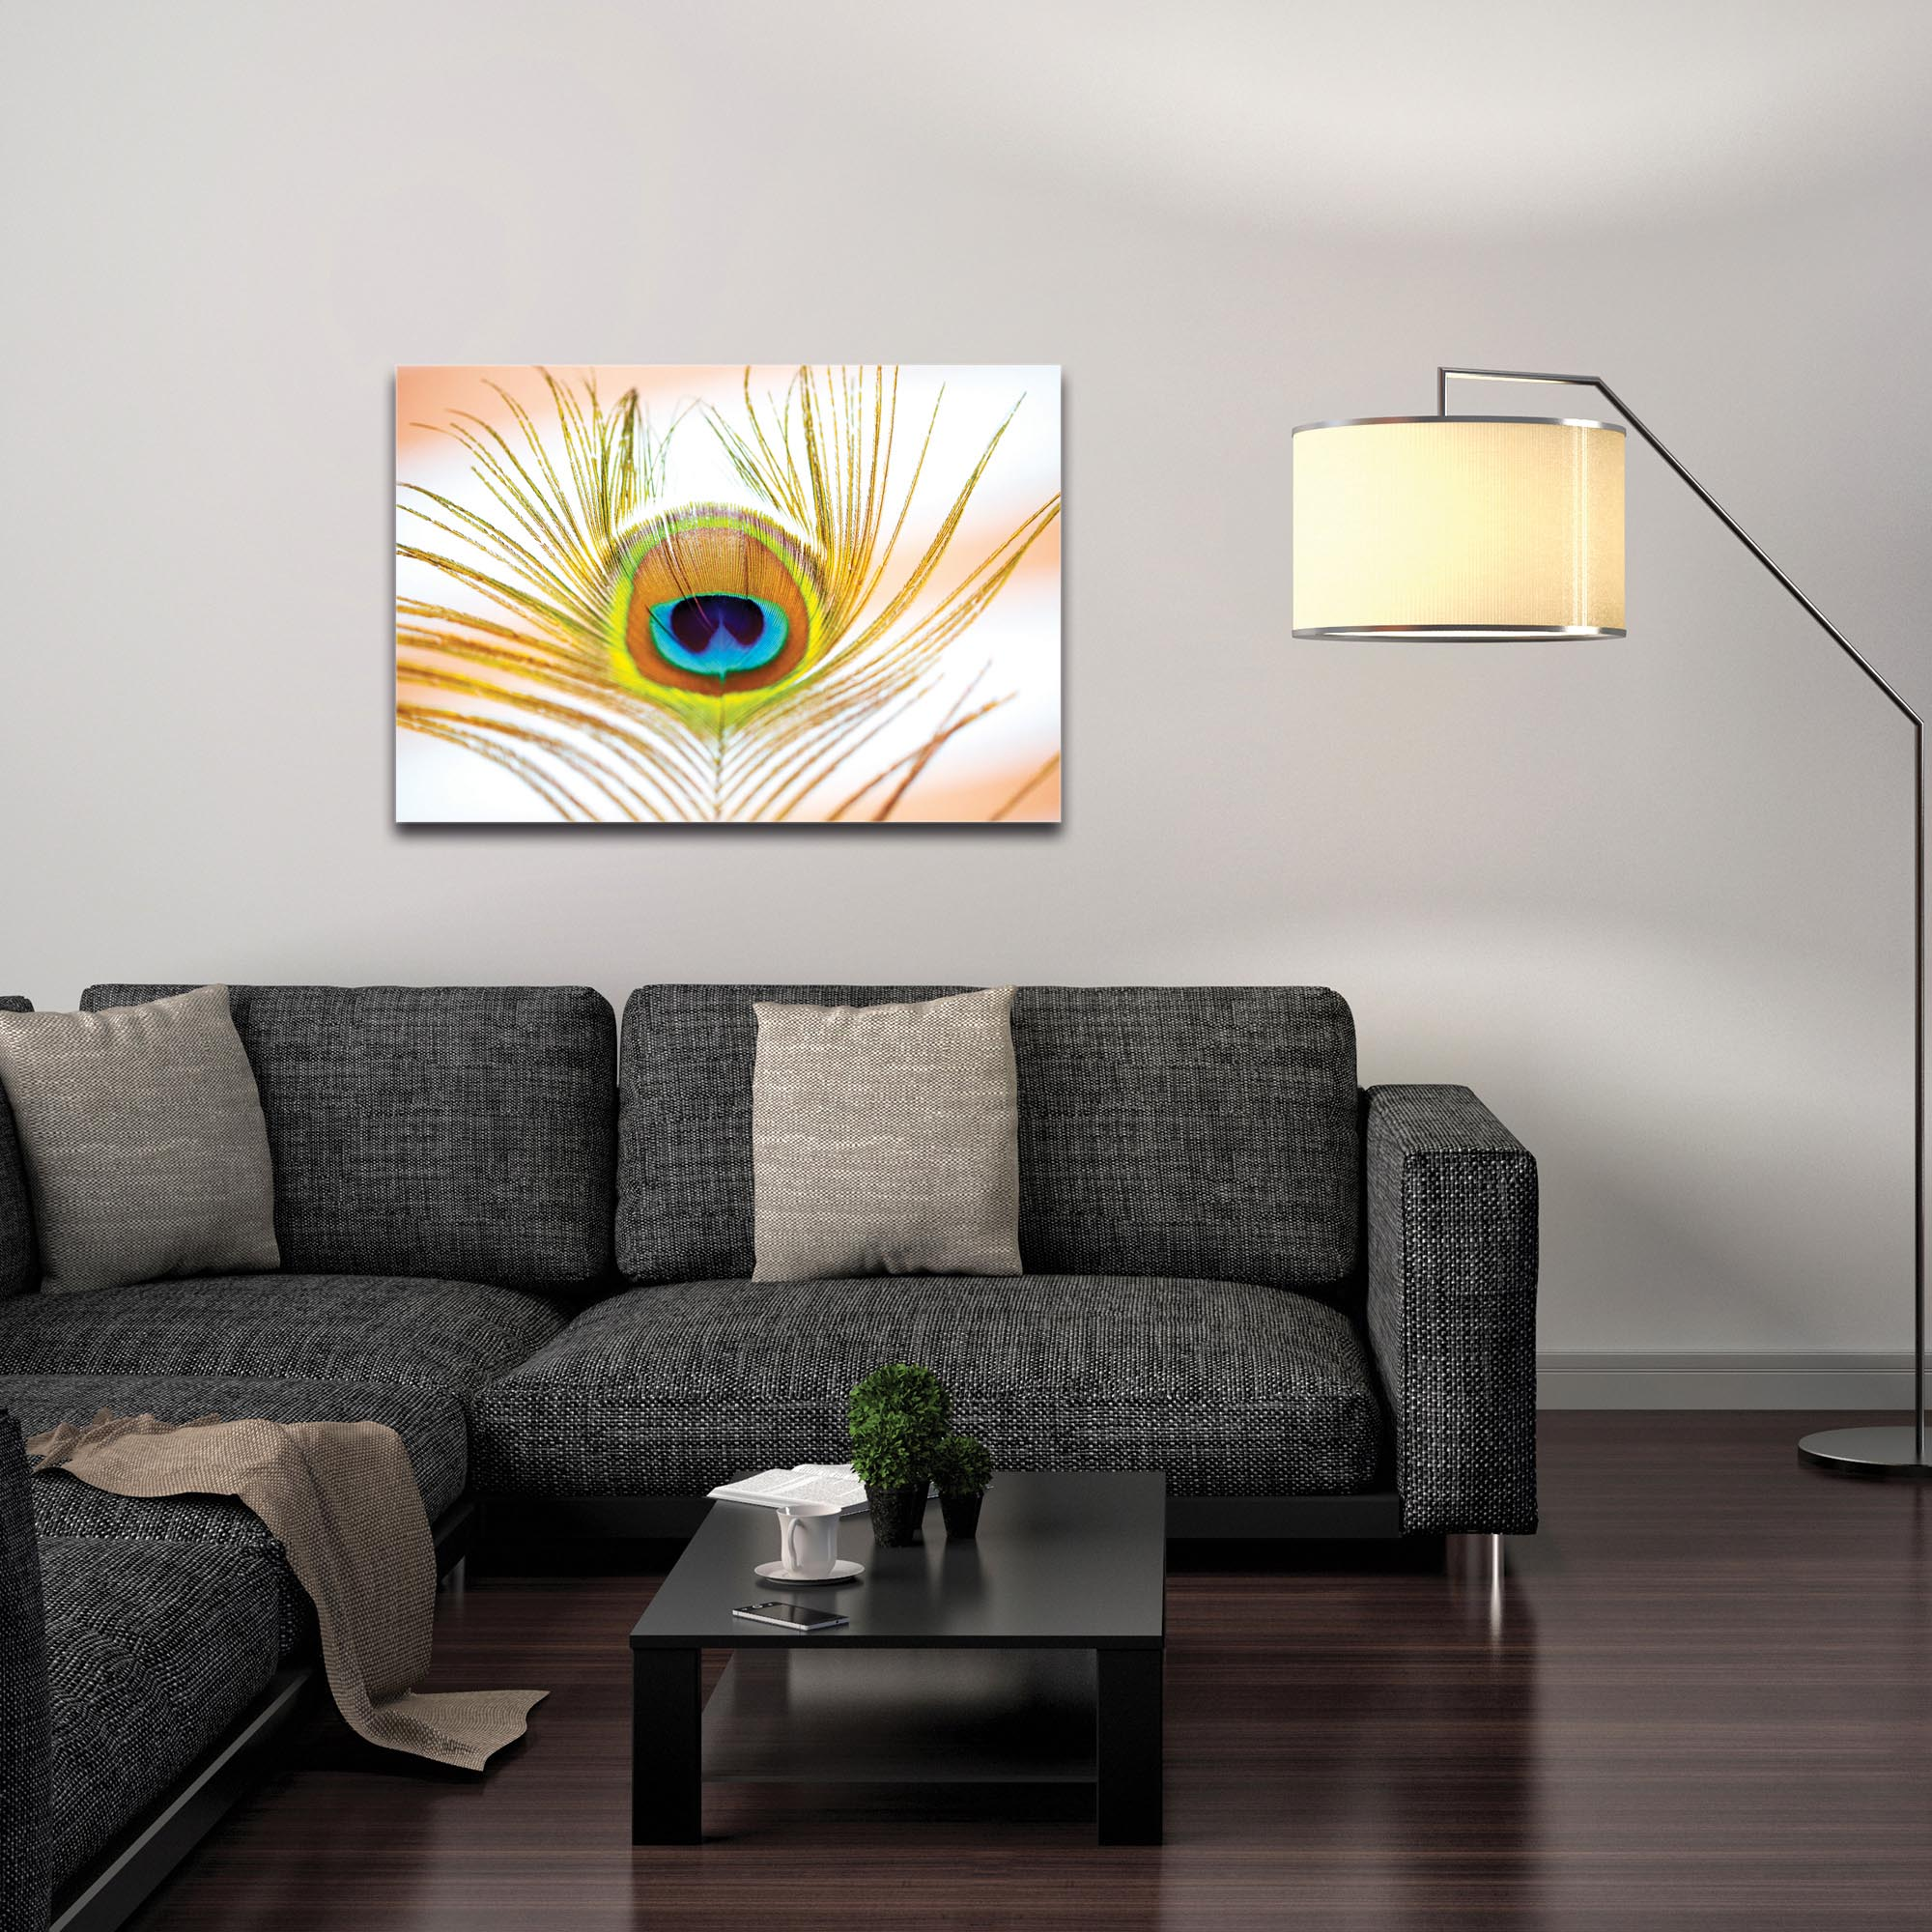 Contemporary Wall Art 'Peacock Sprout' - Wildlife Decor on Metal or Plexiglass - Image 3